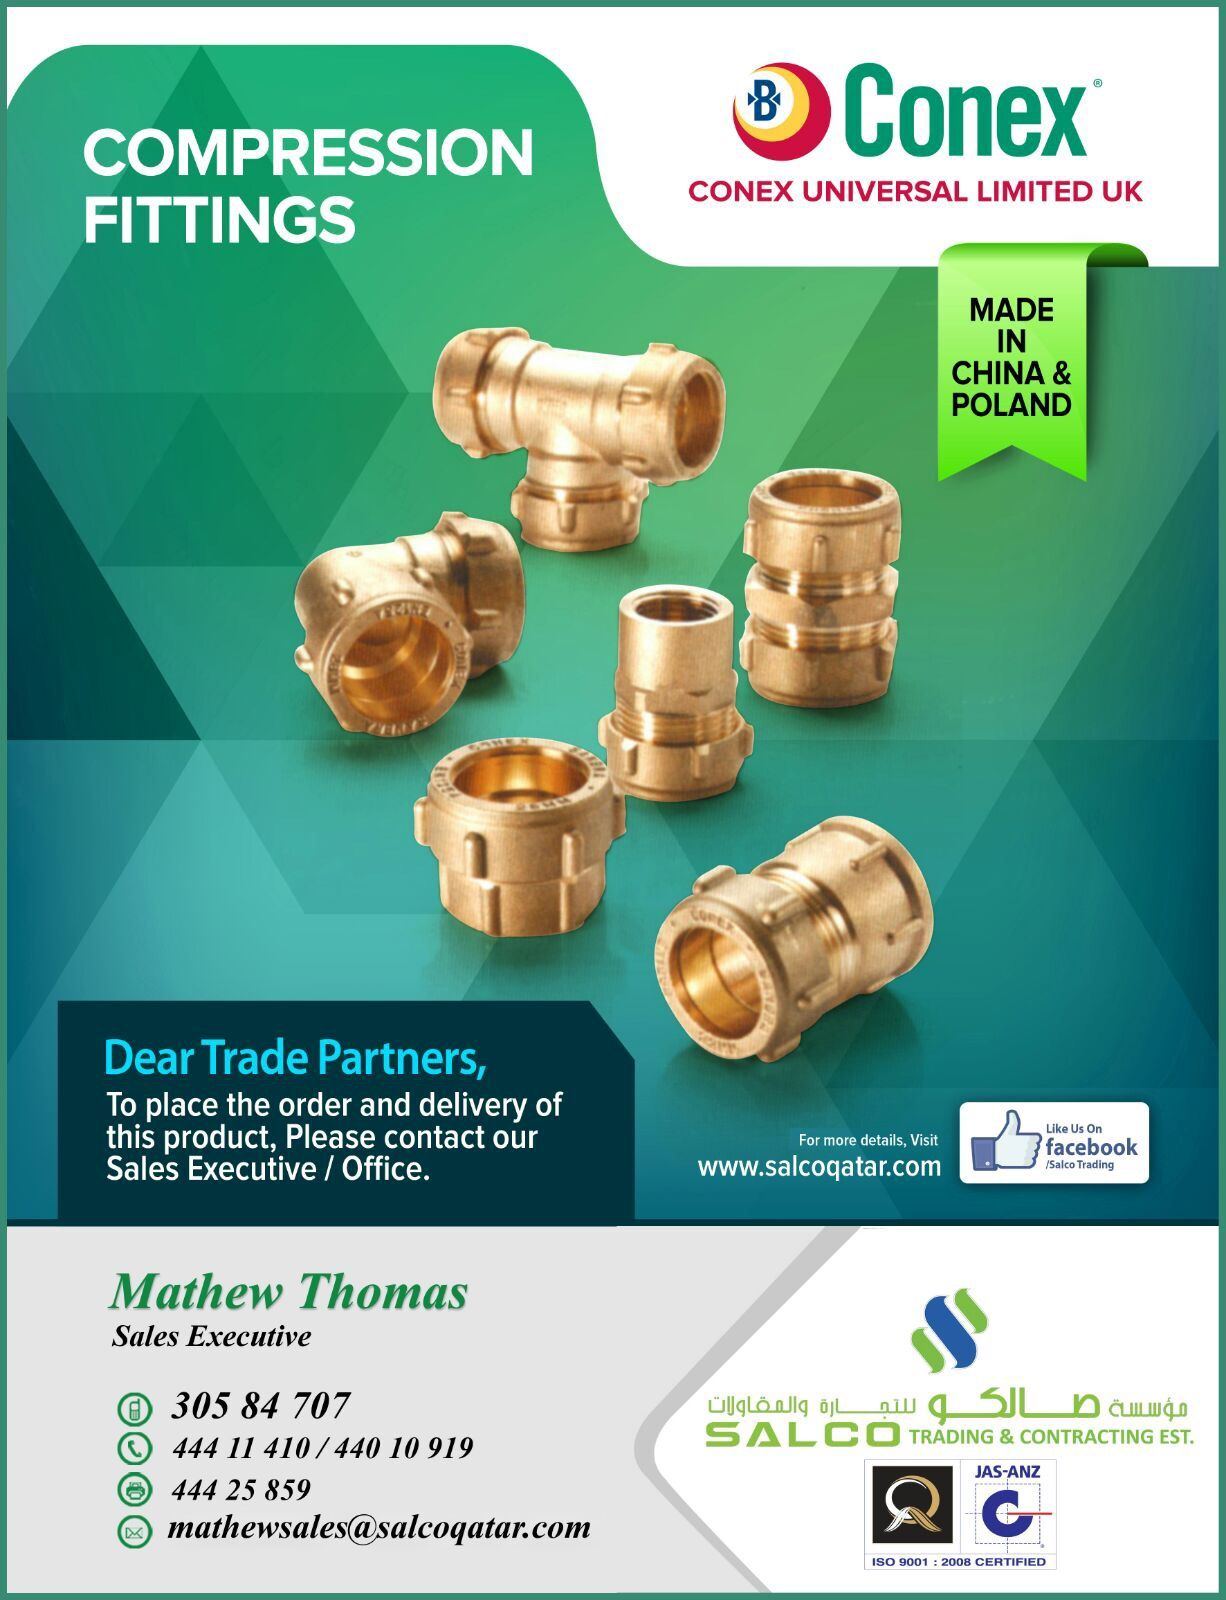 Conex compression fittings | pipe and fittings | Pinterest | Pipes ...